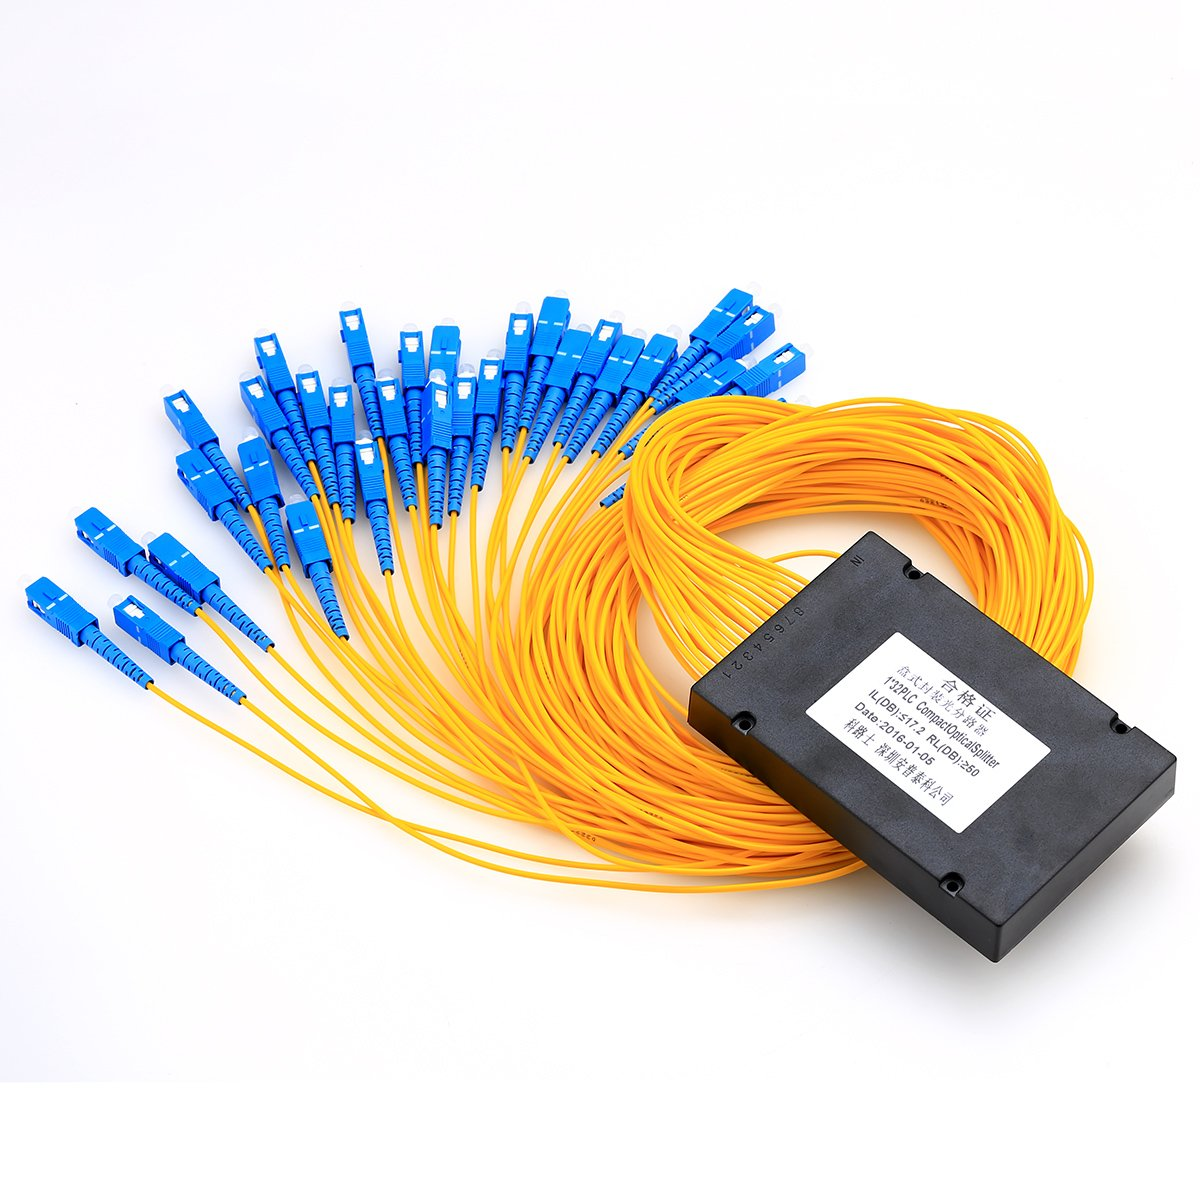 Ftth Optical Equipment Fiber Optic Plc Splitter 132 Sc Wire Tes Energyefficient Electrical Solutions Pigtailed Branching Device Home Audio Theater